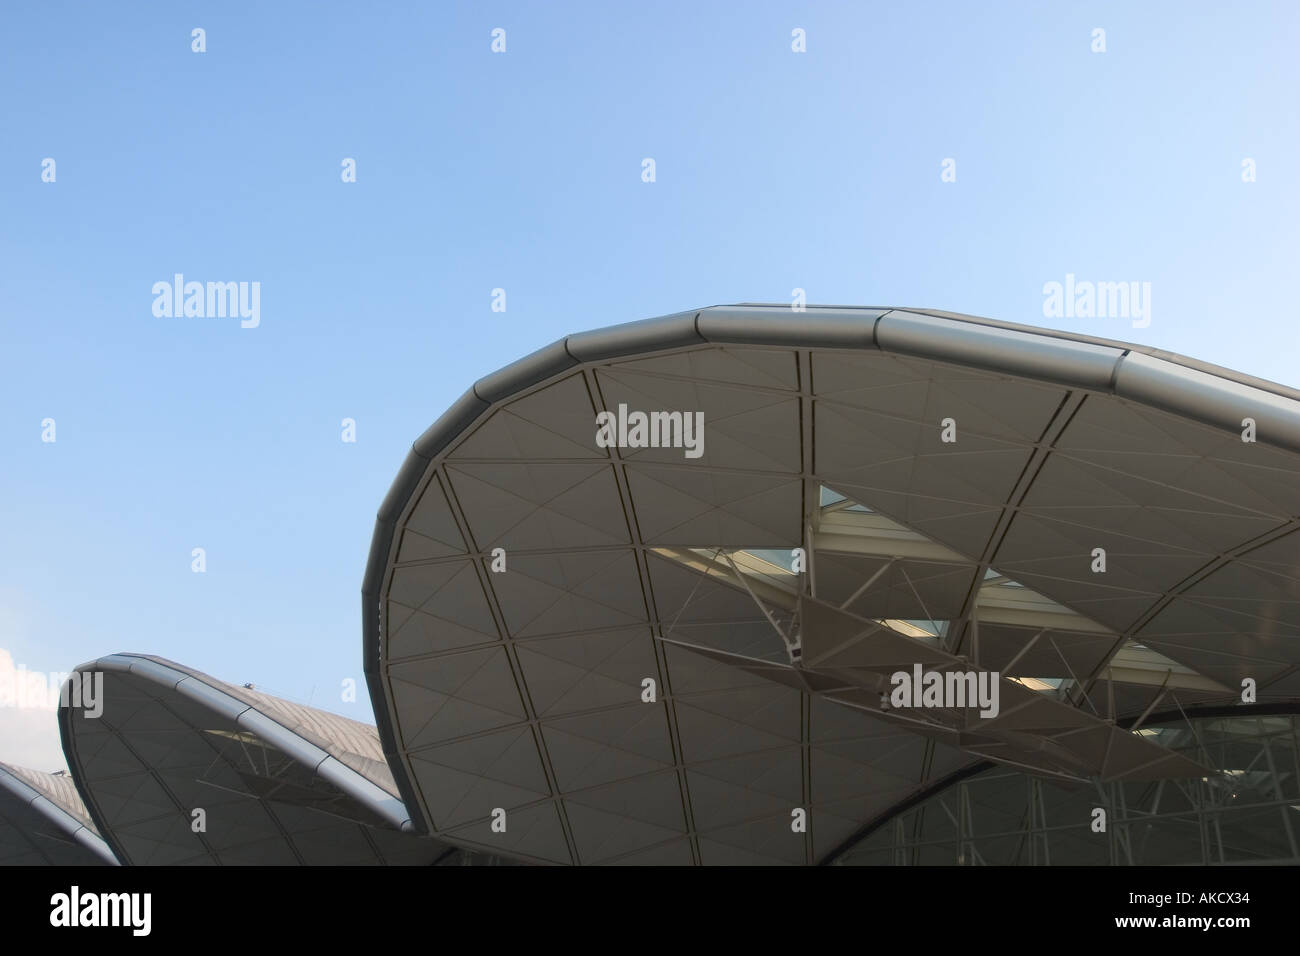 Exterior Roofline of Hong Kong International Airport Chek Lap Kok HKG - Stock Image